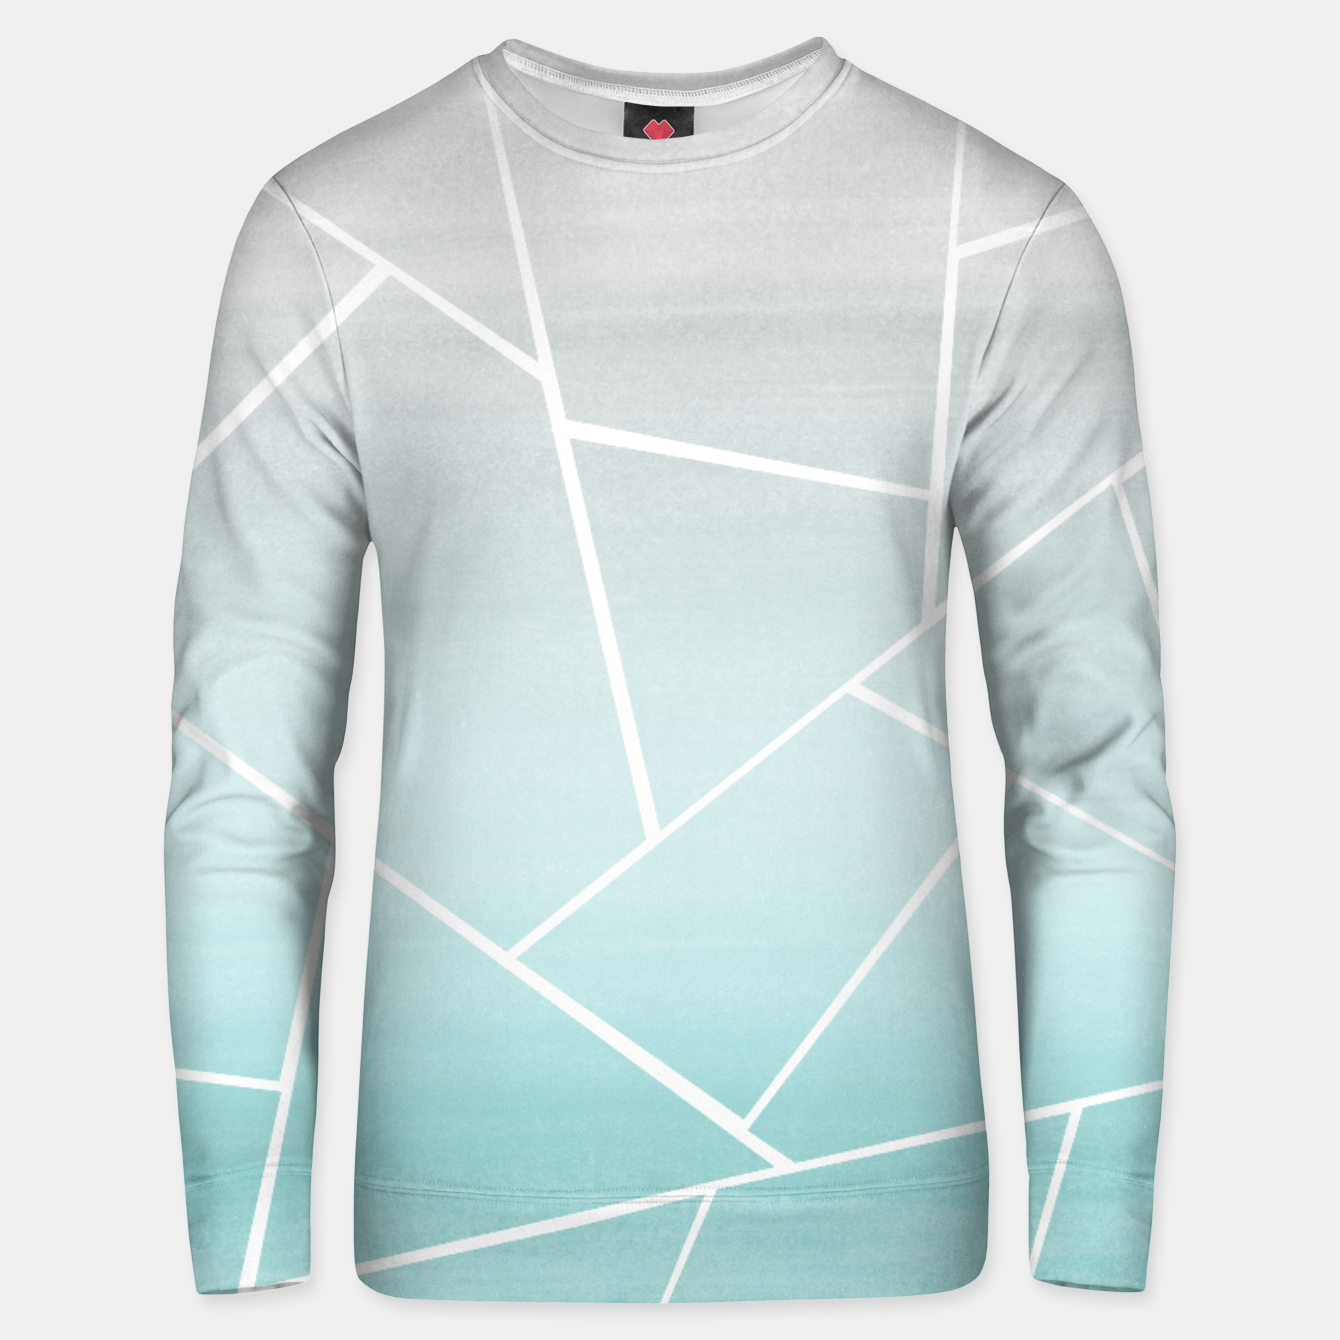 Zdjęcie Soft Teal Gray Watercolor Geometric Glam #1 #geo #decor #art  Unisex sweatshirt - Live Heroes